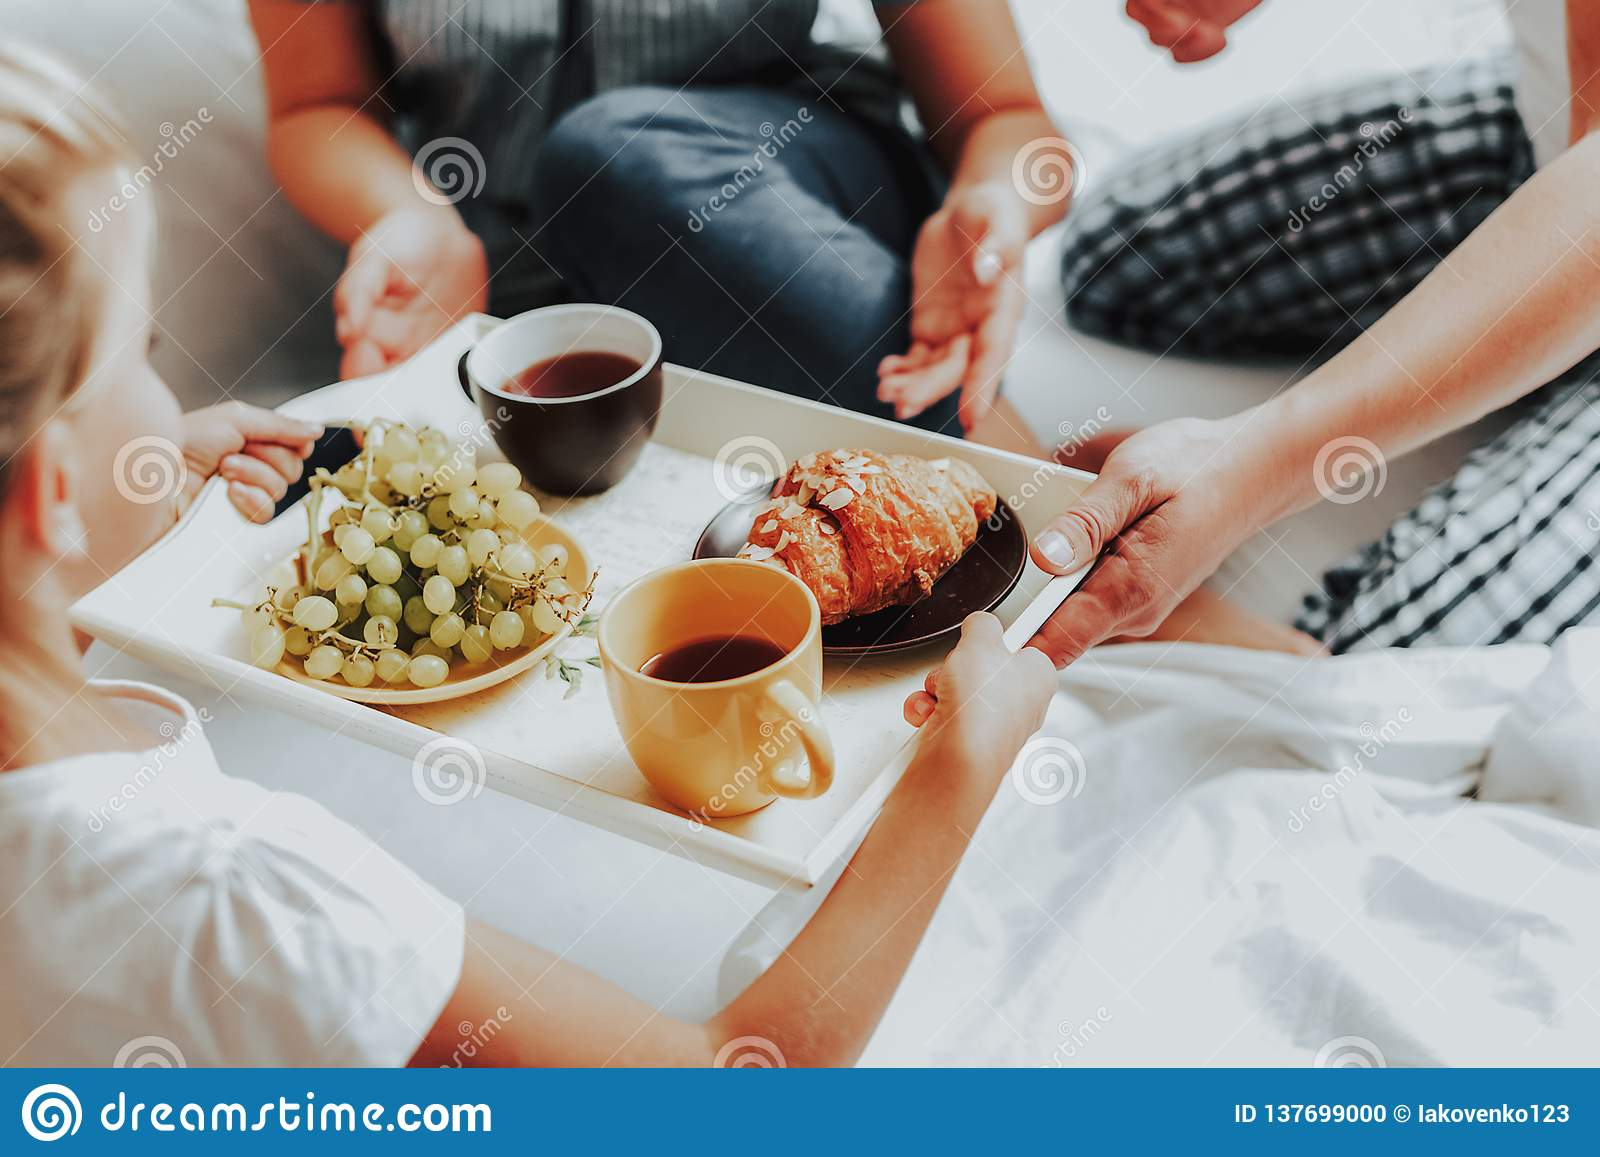 Happy Child Bringing Breakfast To Parents In Bed Stock Photo Image Of Interior Morning 137699000